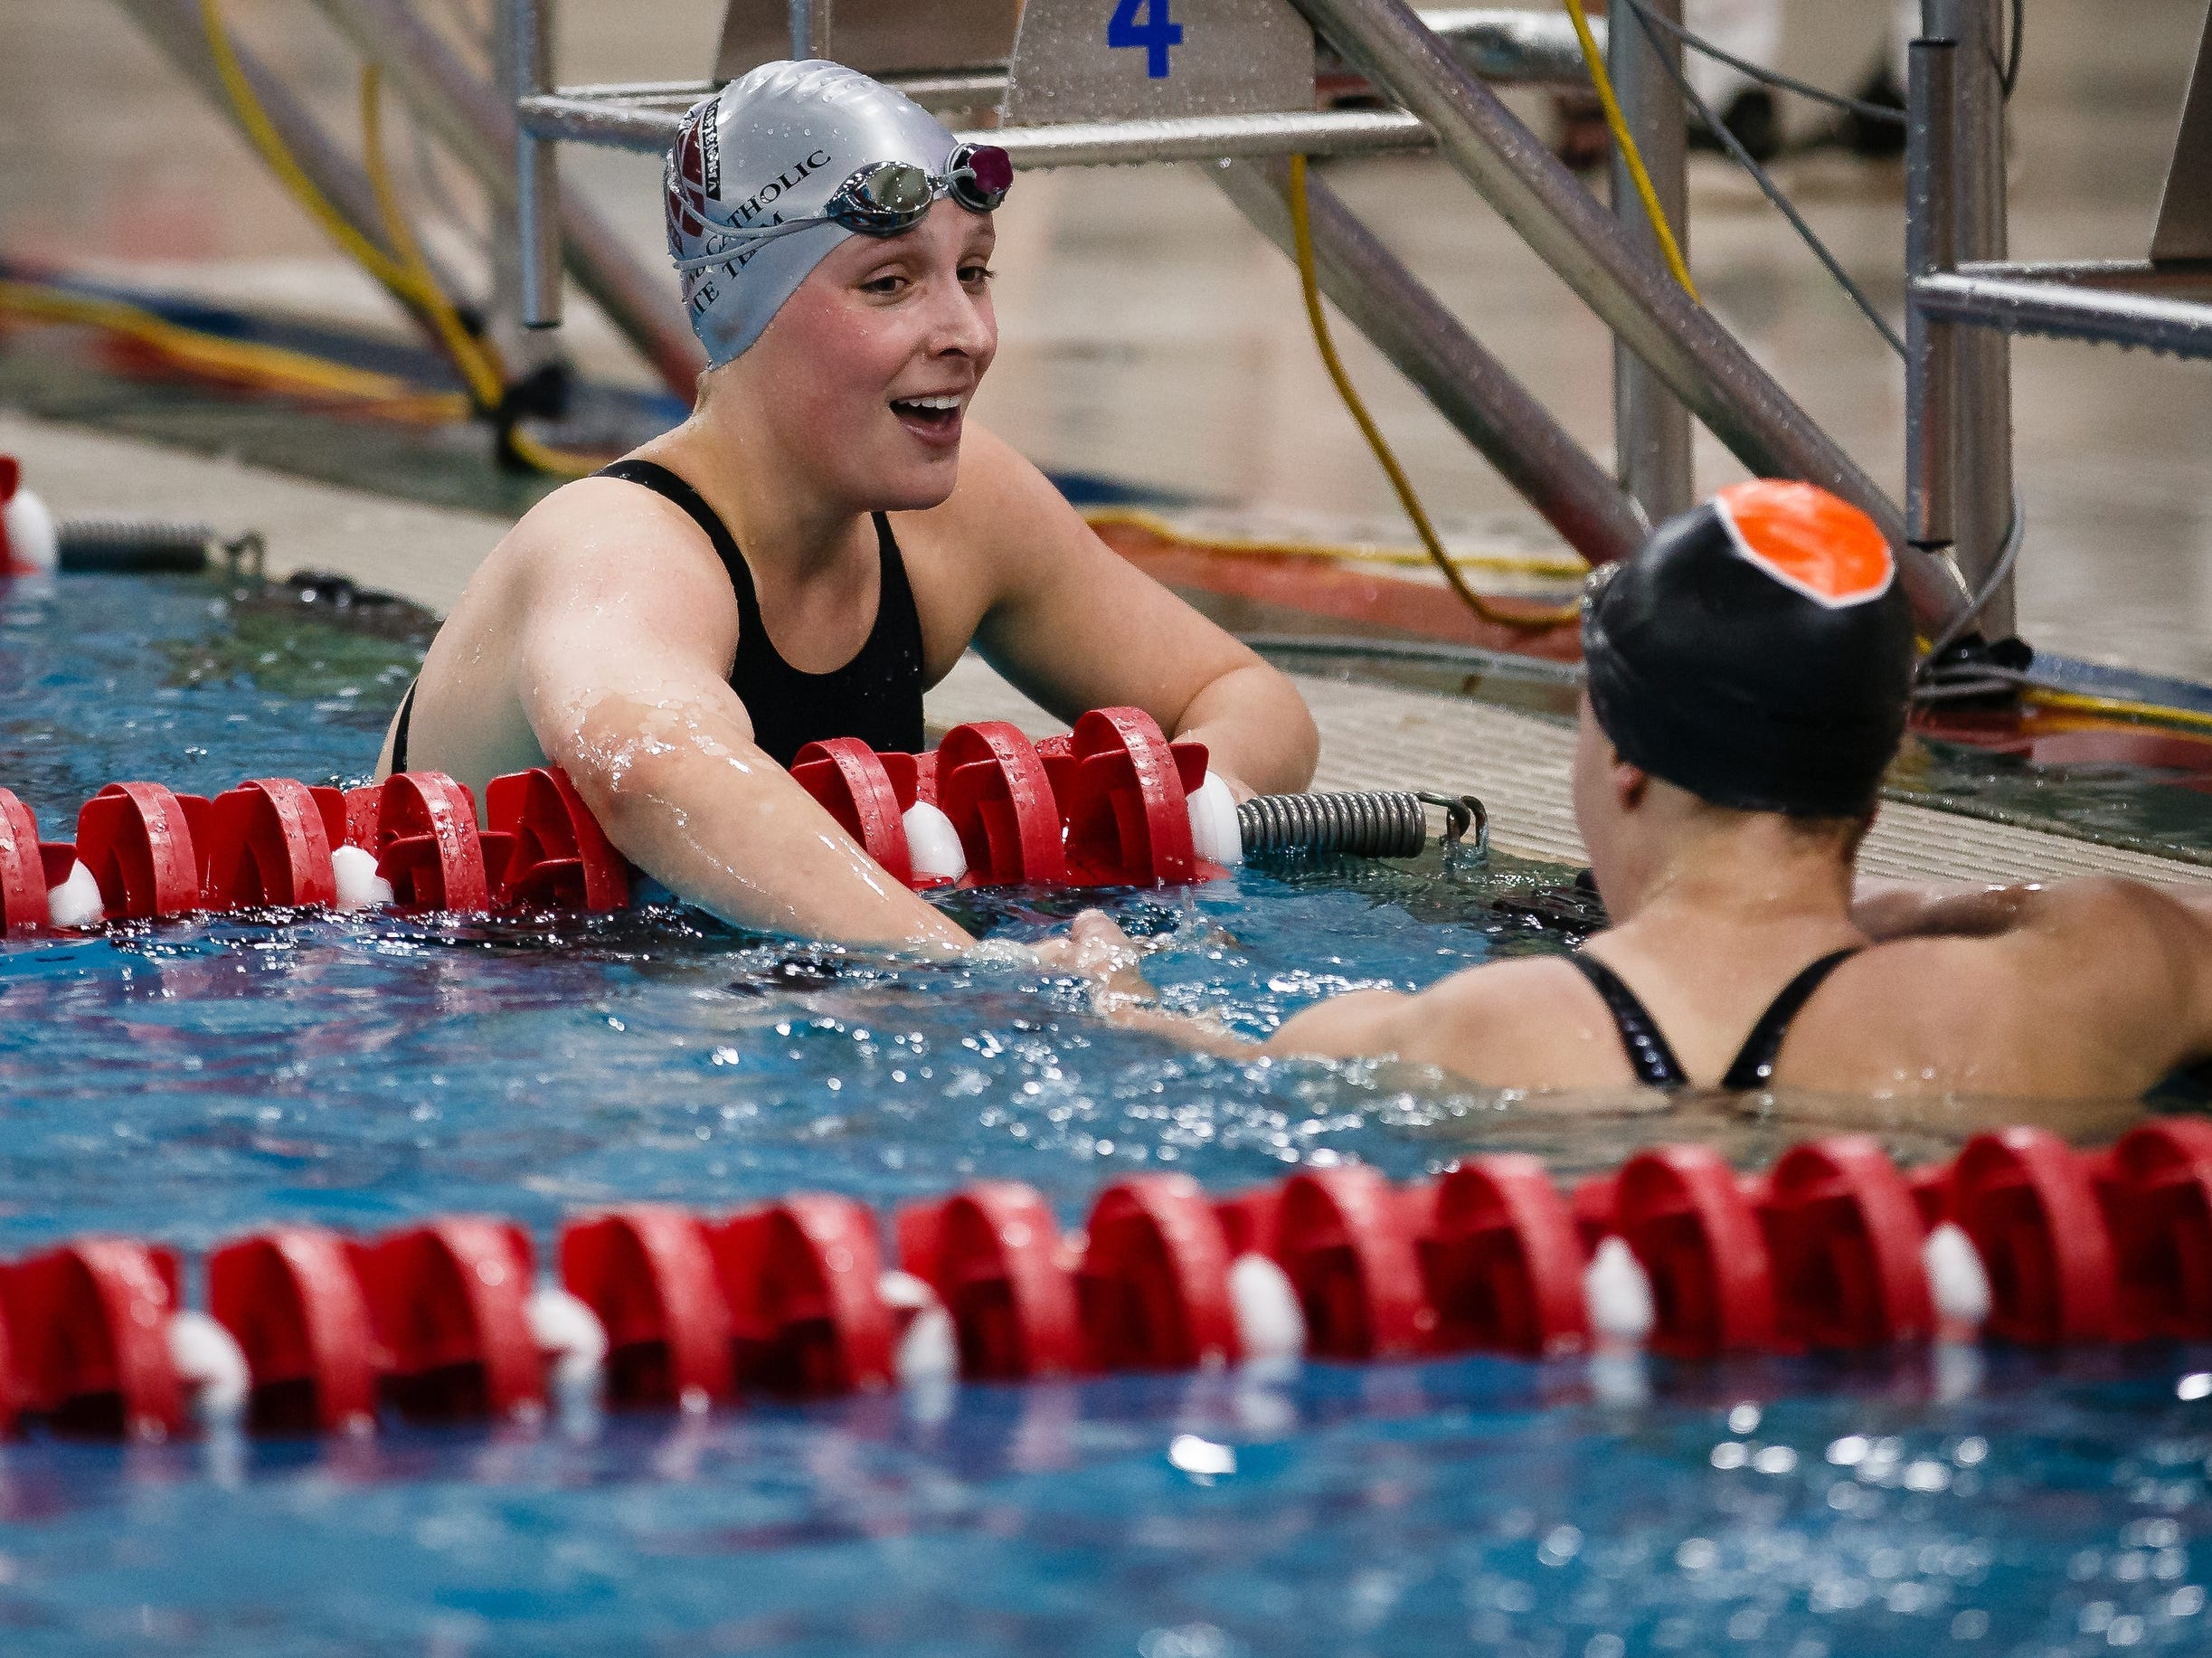 Dowling Catholics Claire Culver congratulates Amy Feddersen of Ames after the 200 yard freestyle event at the Iowa girls state swimming meet on Saturday, Nov. 3, 2018, in Marshalltown.